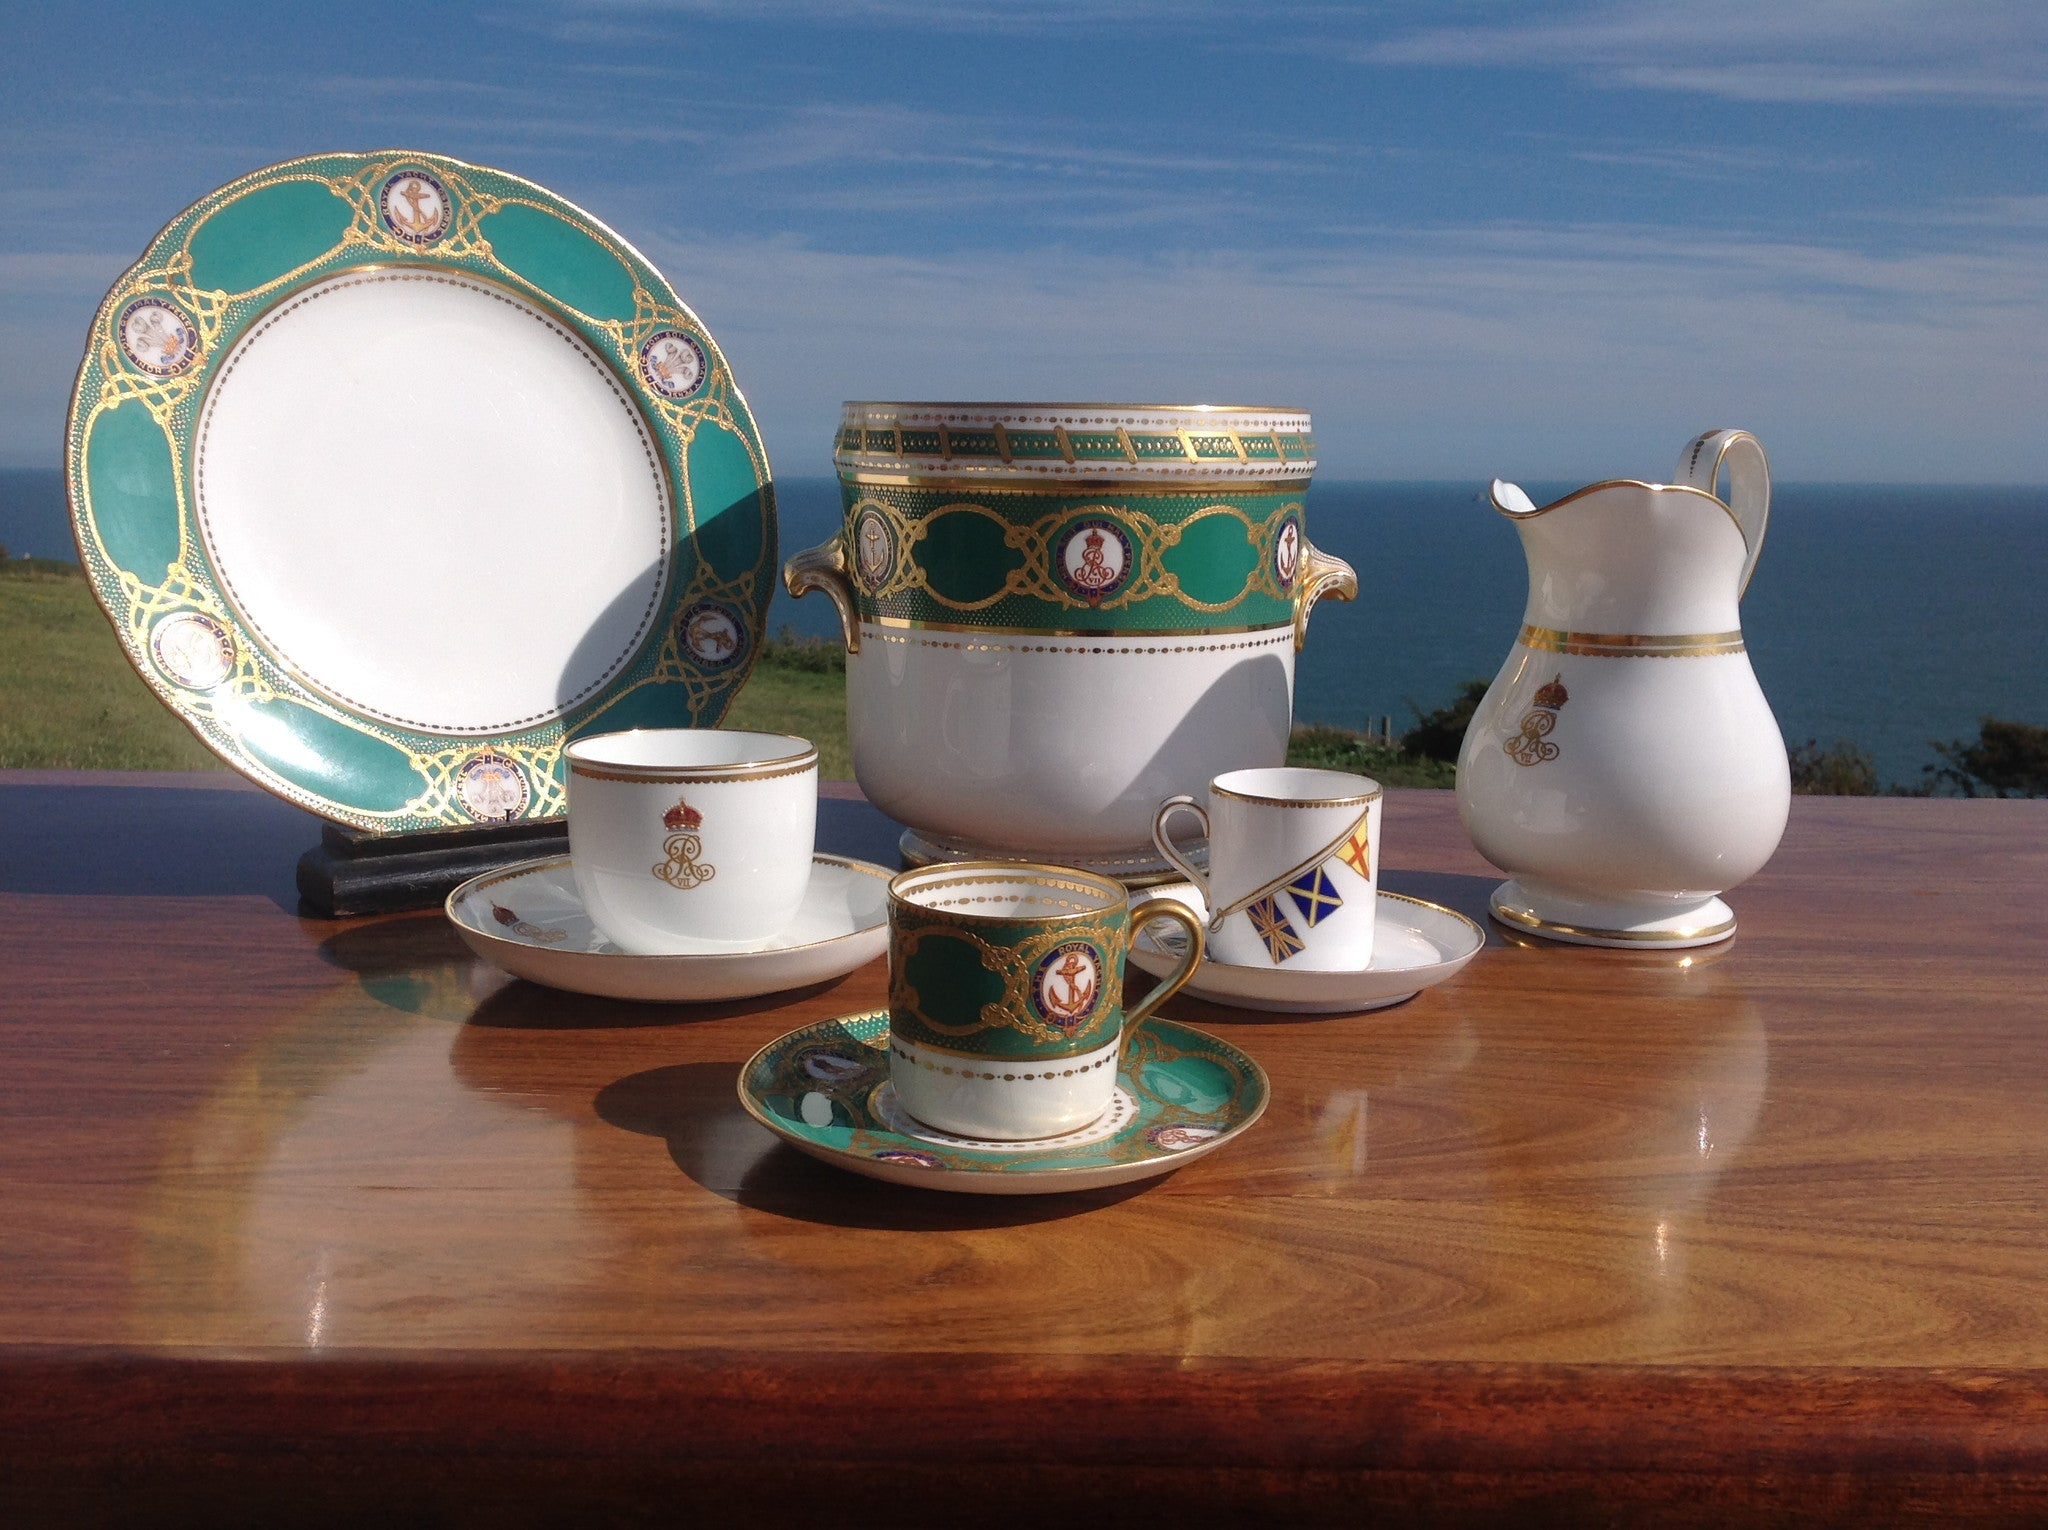 Royal Yacht Victoria & Albert III State dinner service King Edward VII George V